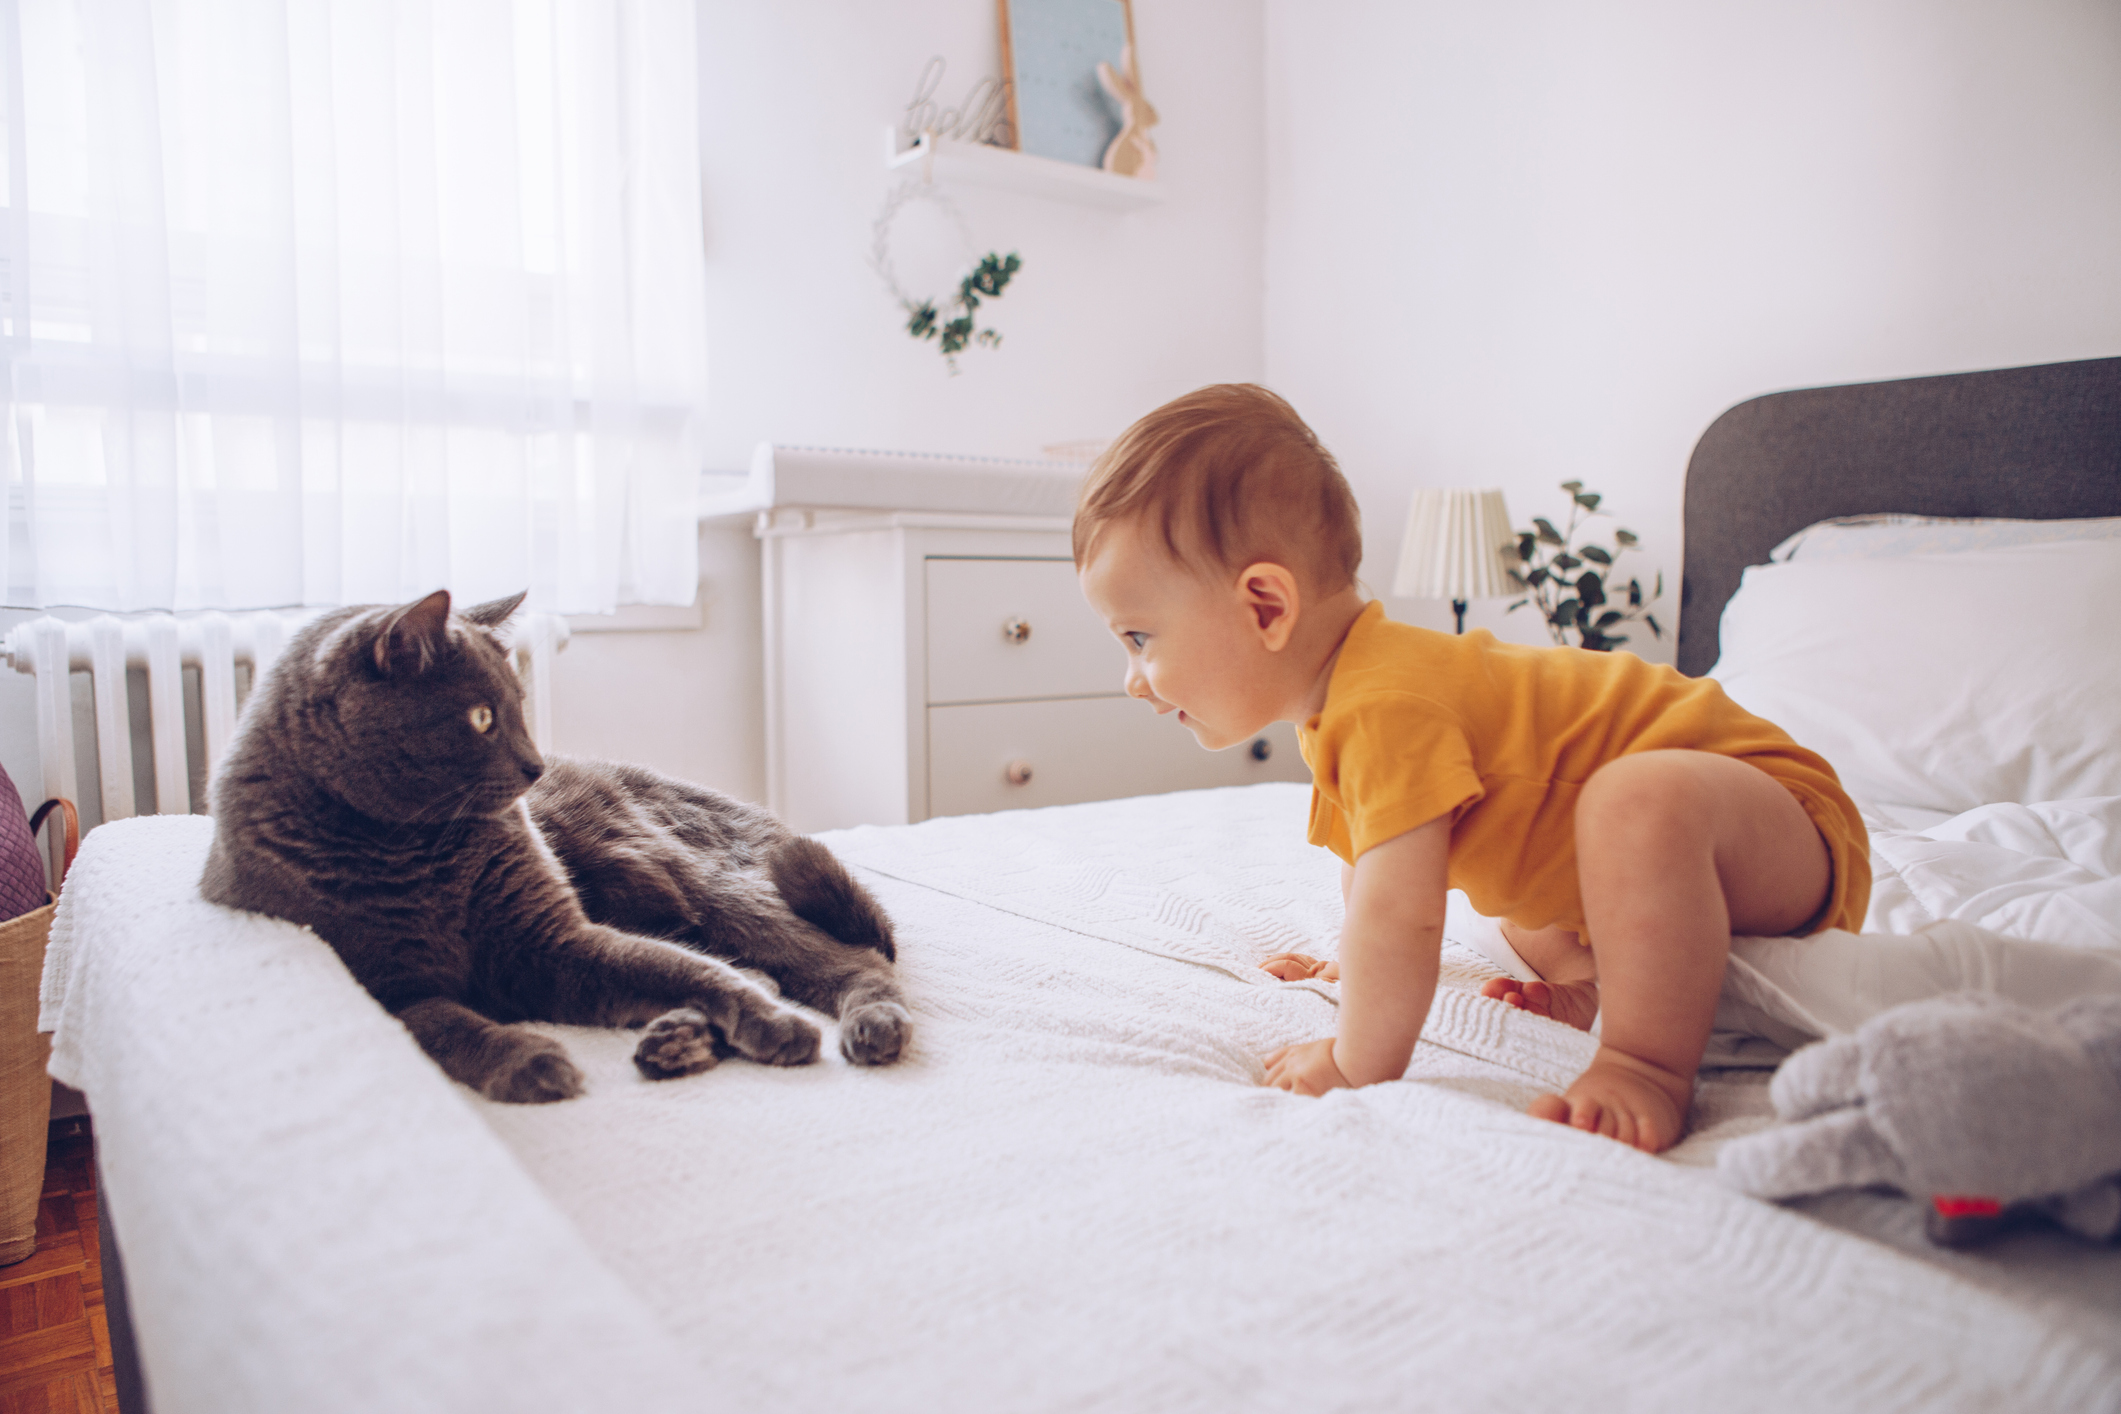 A baby crawling towards a cat on a bed